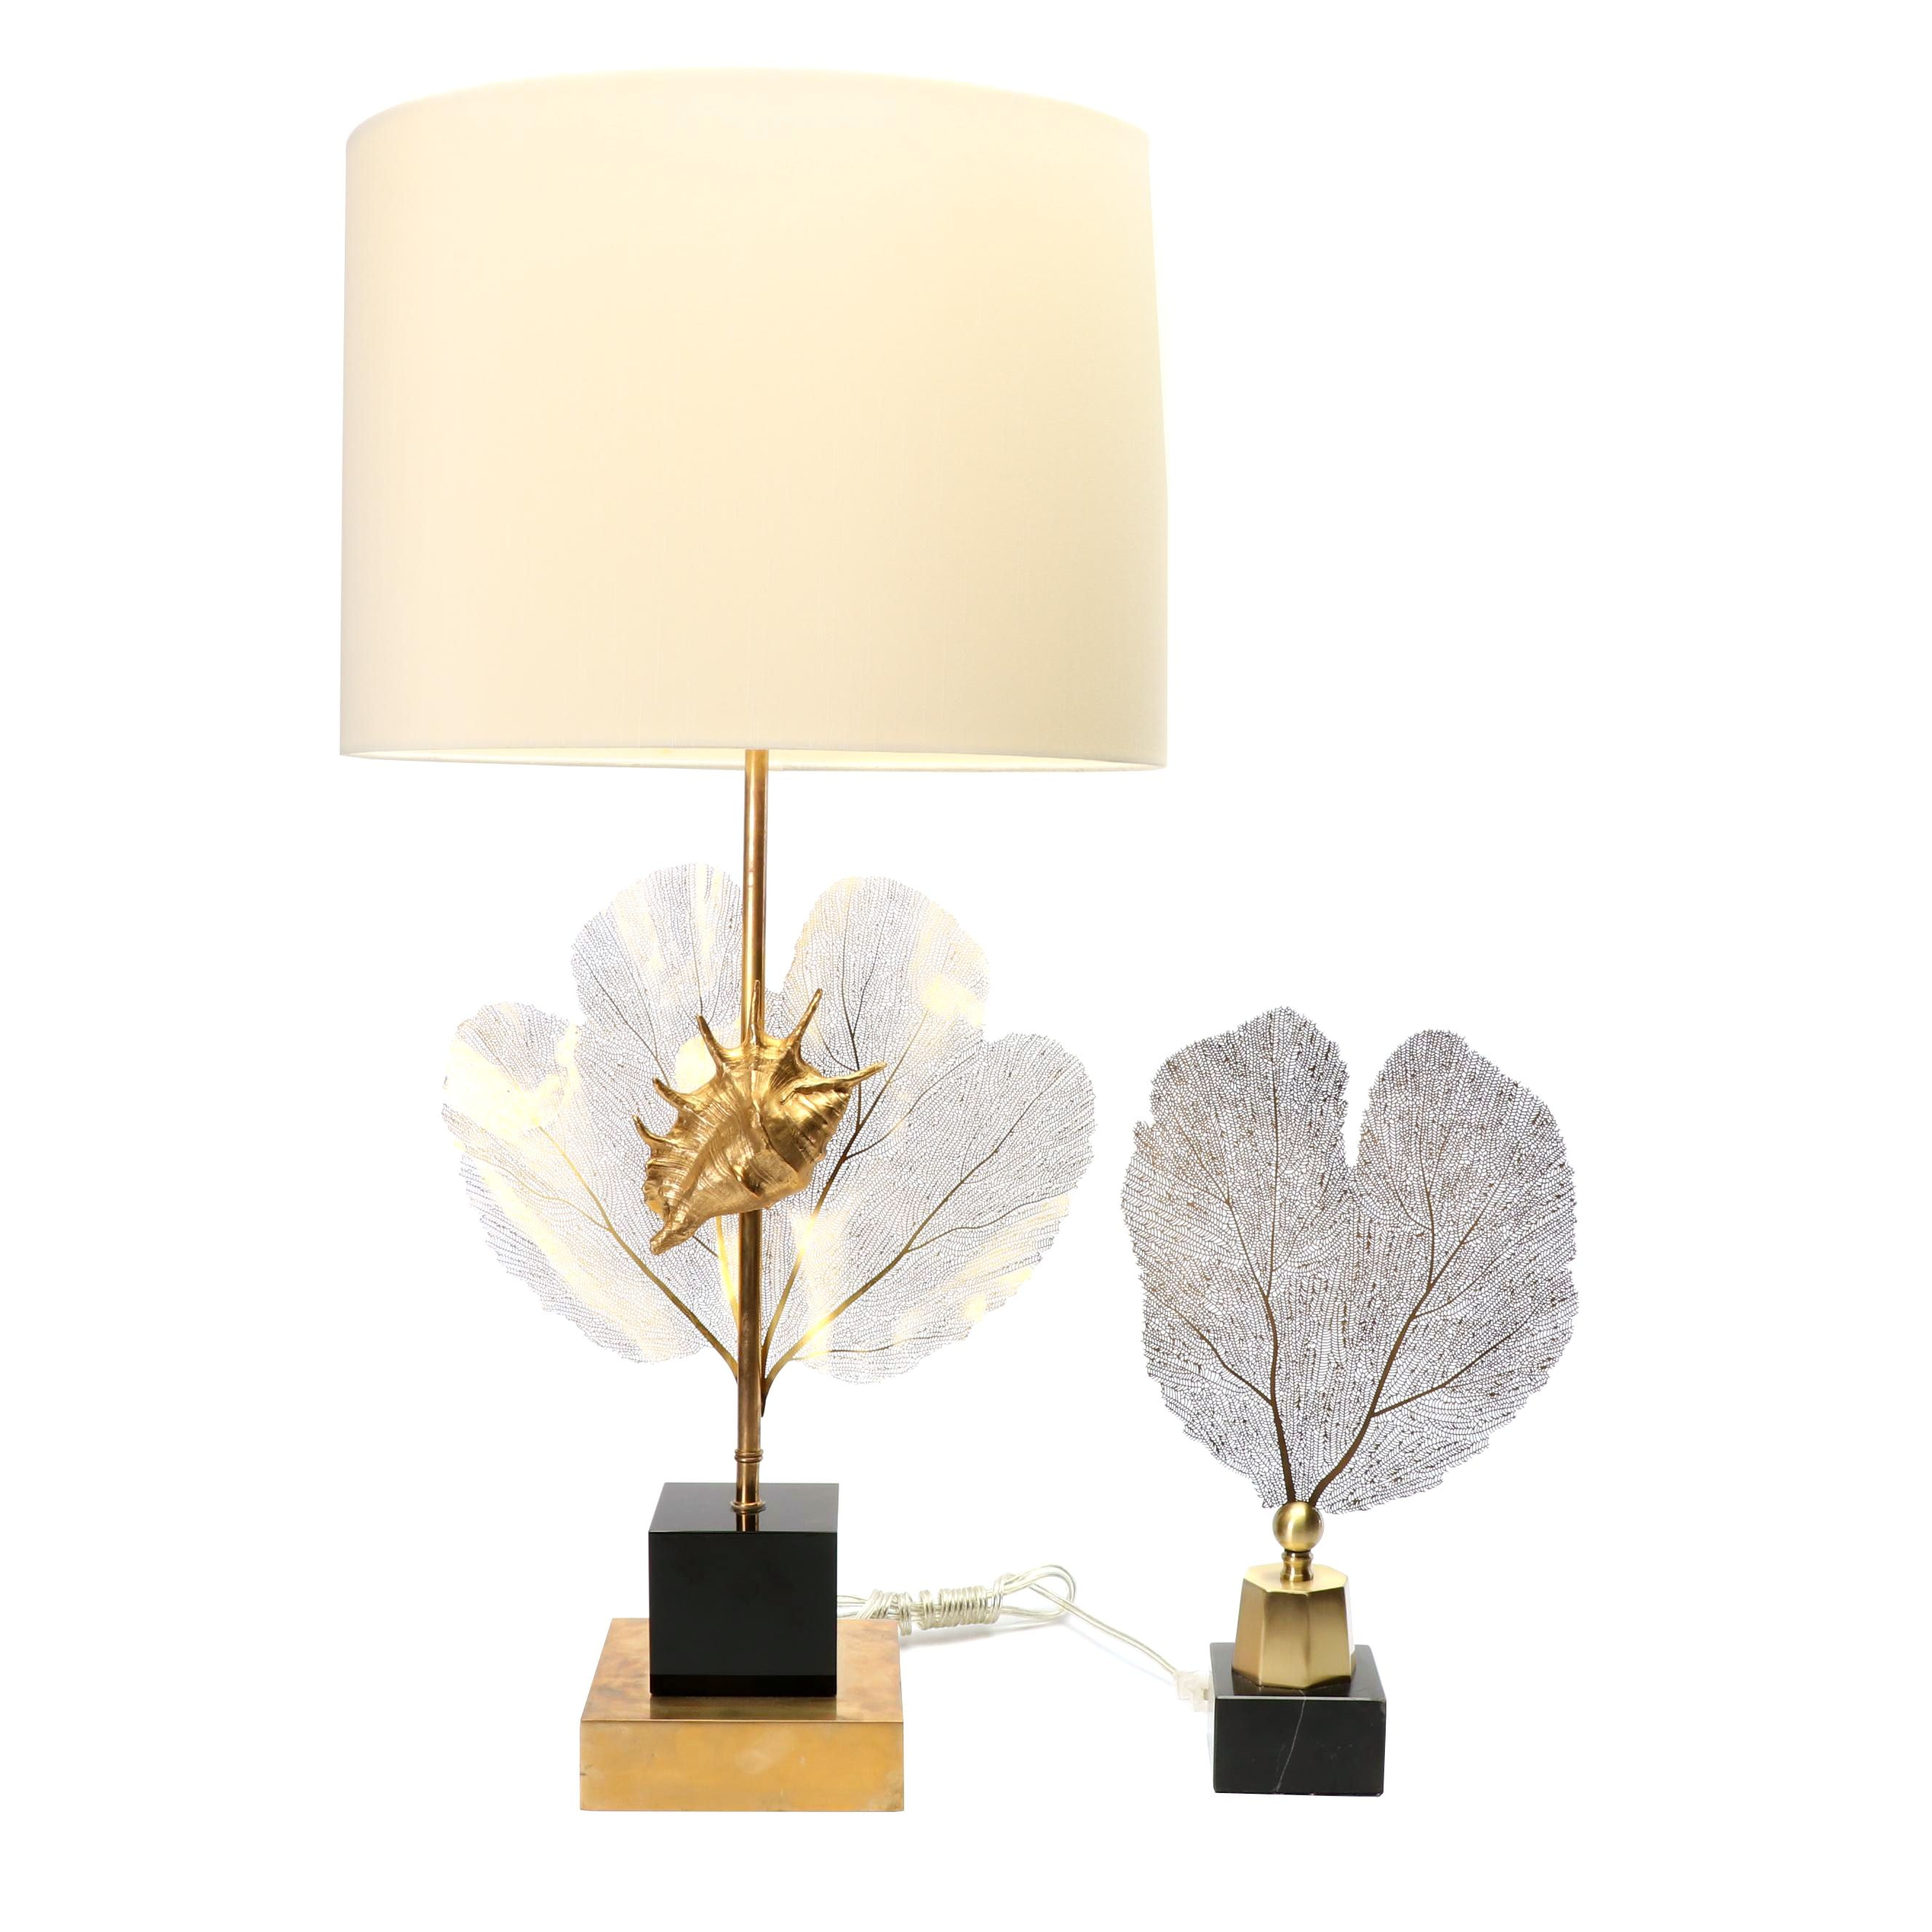 John-Richard Brass Sea Fern and Seashell Table Lamp with Unlabelled Sculpture